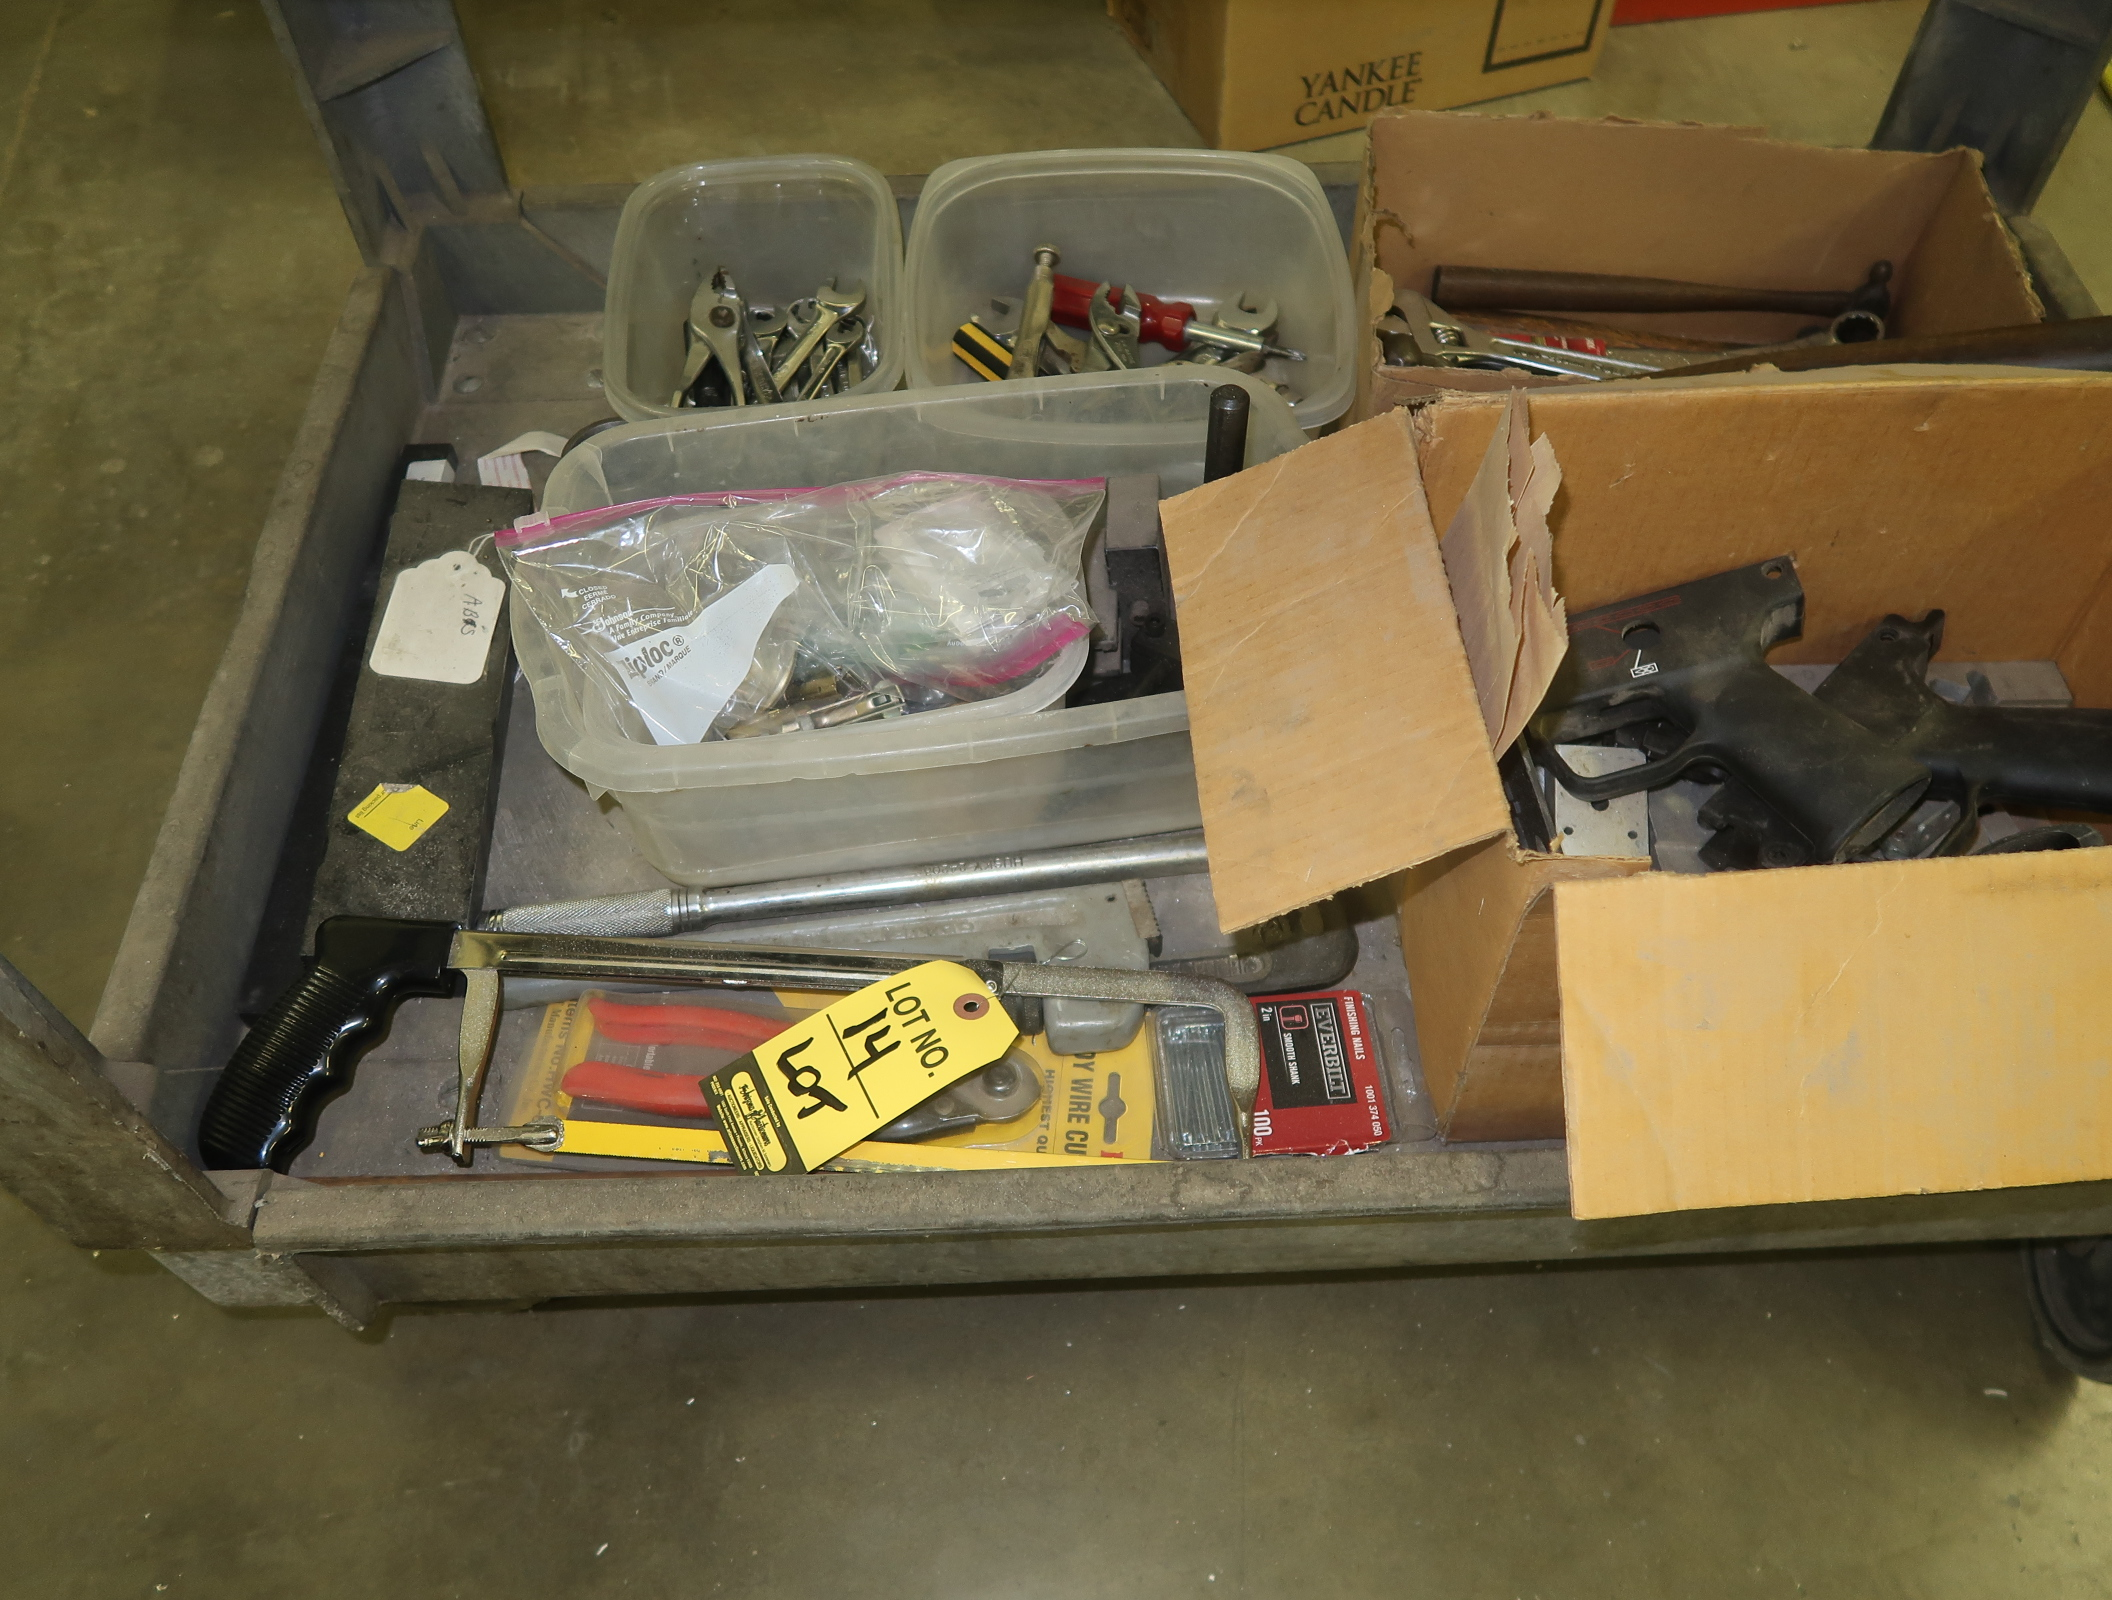 LOT CONTENTS ON BOTTOM OF CART, WRENCHES, SAWS, ETC.